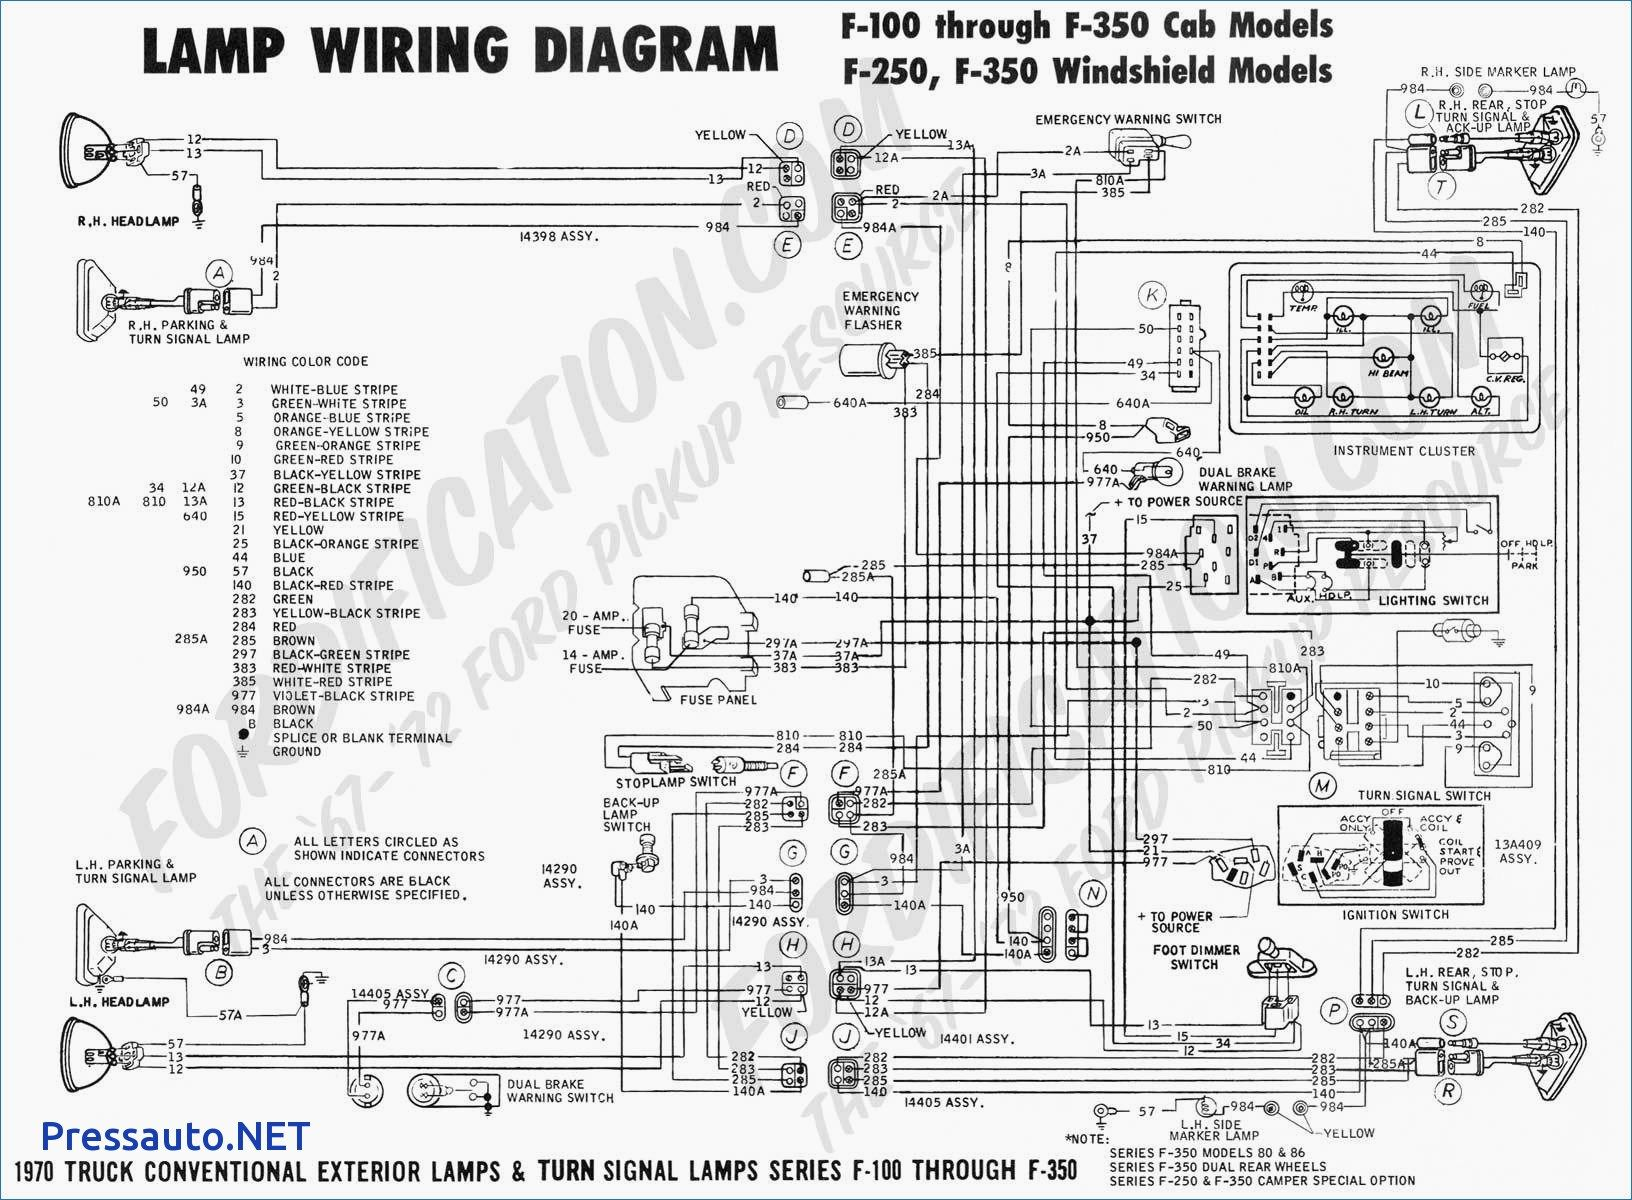 1968 Ford F 250 Camper Special Wiring Diagram Welding Diagram Symbols Begeboy Wiring Diagram Source